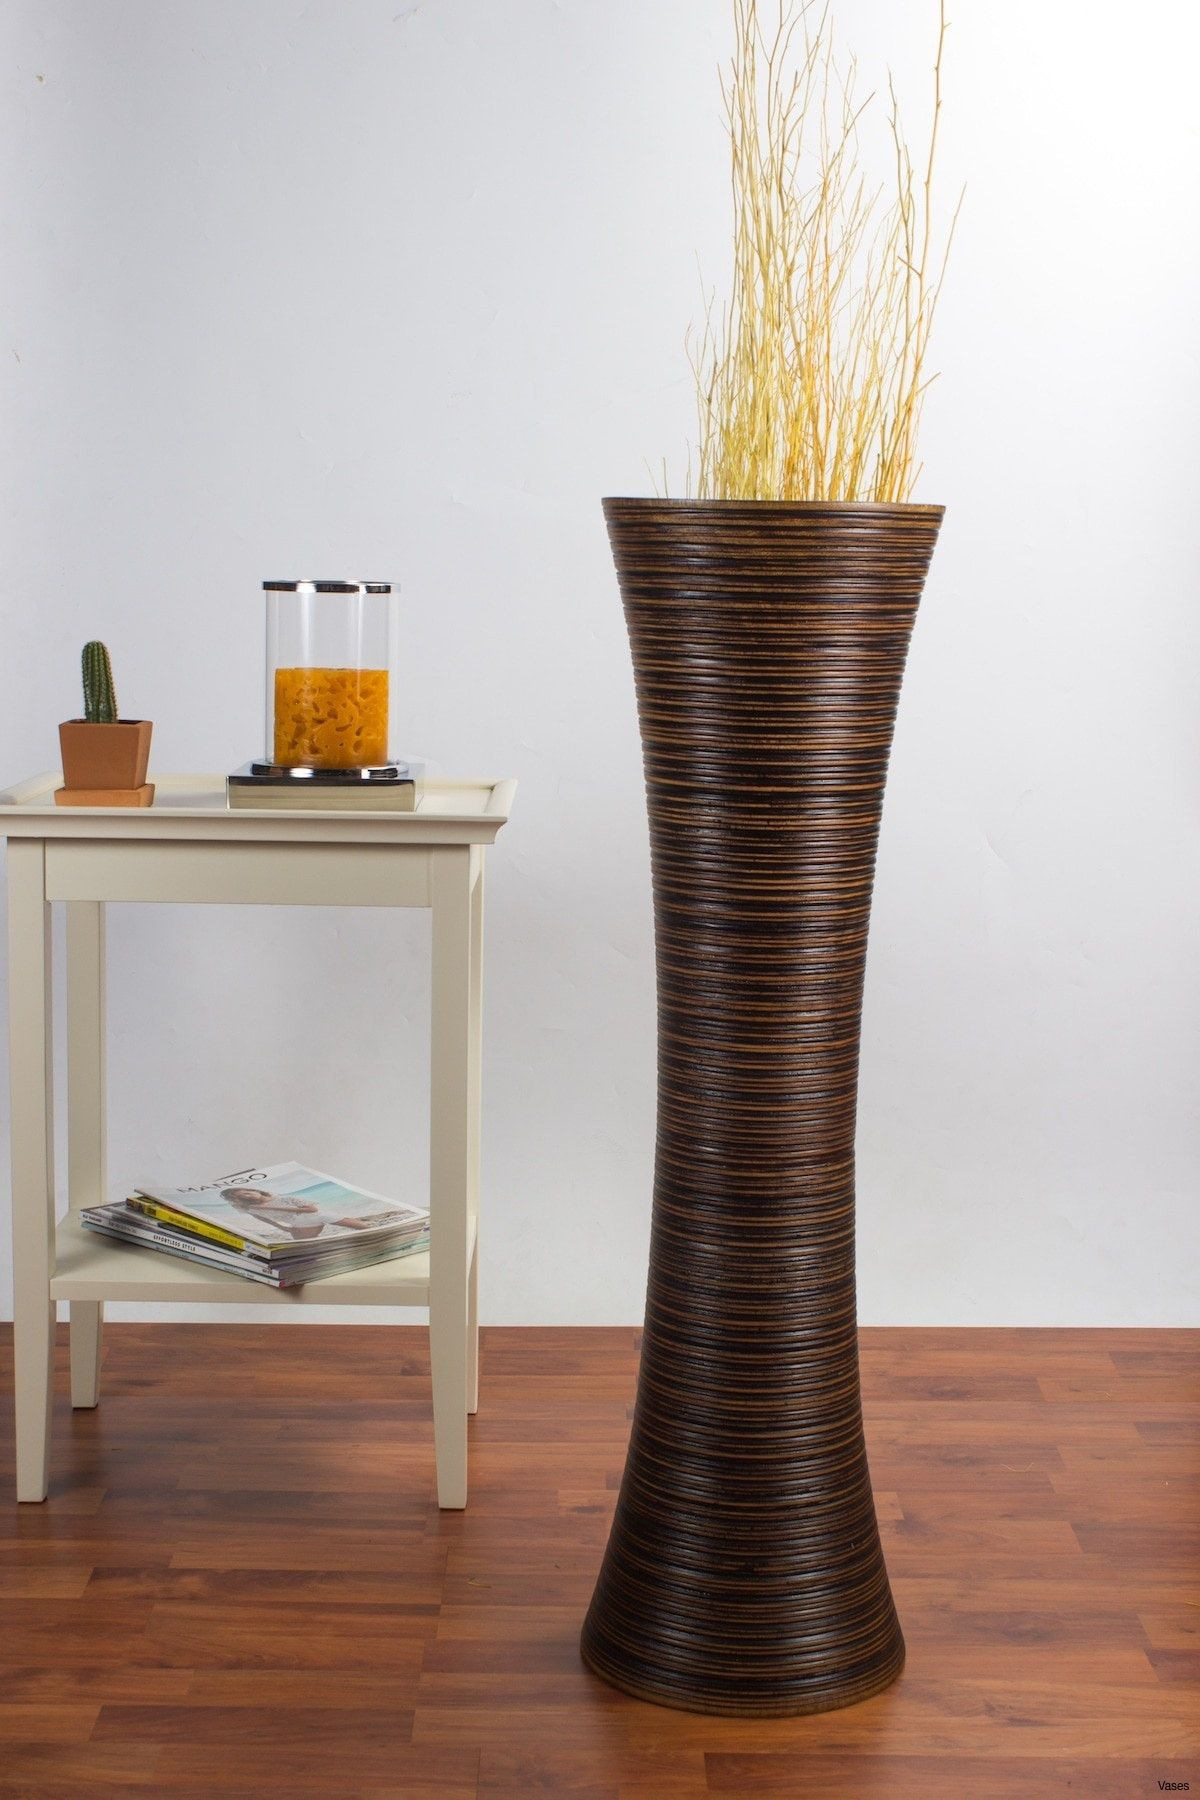 large red vase of tall decorative vases luxury decorative floor vases fresh d dkbrw throughout tall decorative vases luxury decorative floor vases fresh d dkbrw 5749 1h vases tall brown i